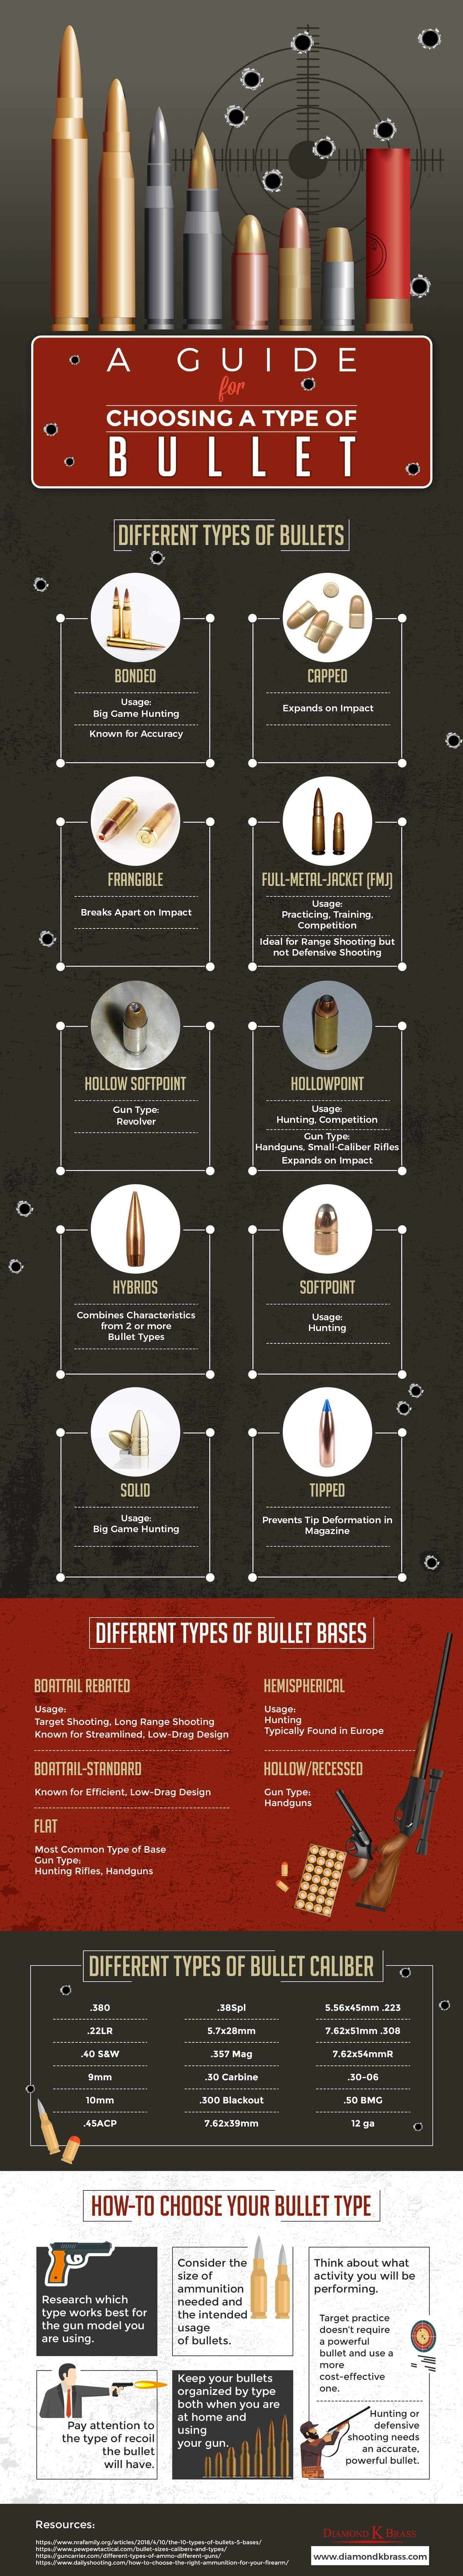 A Guide for Choosing a Type of Bullet #infographic